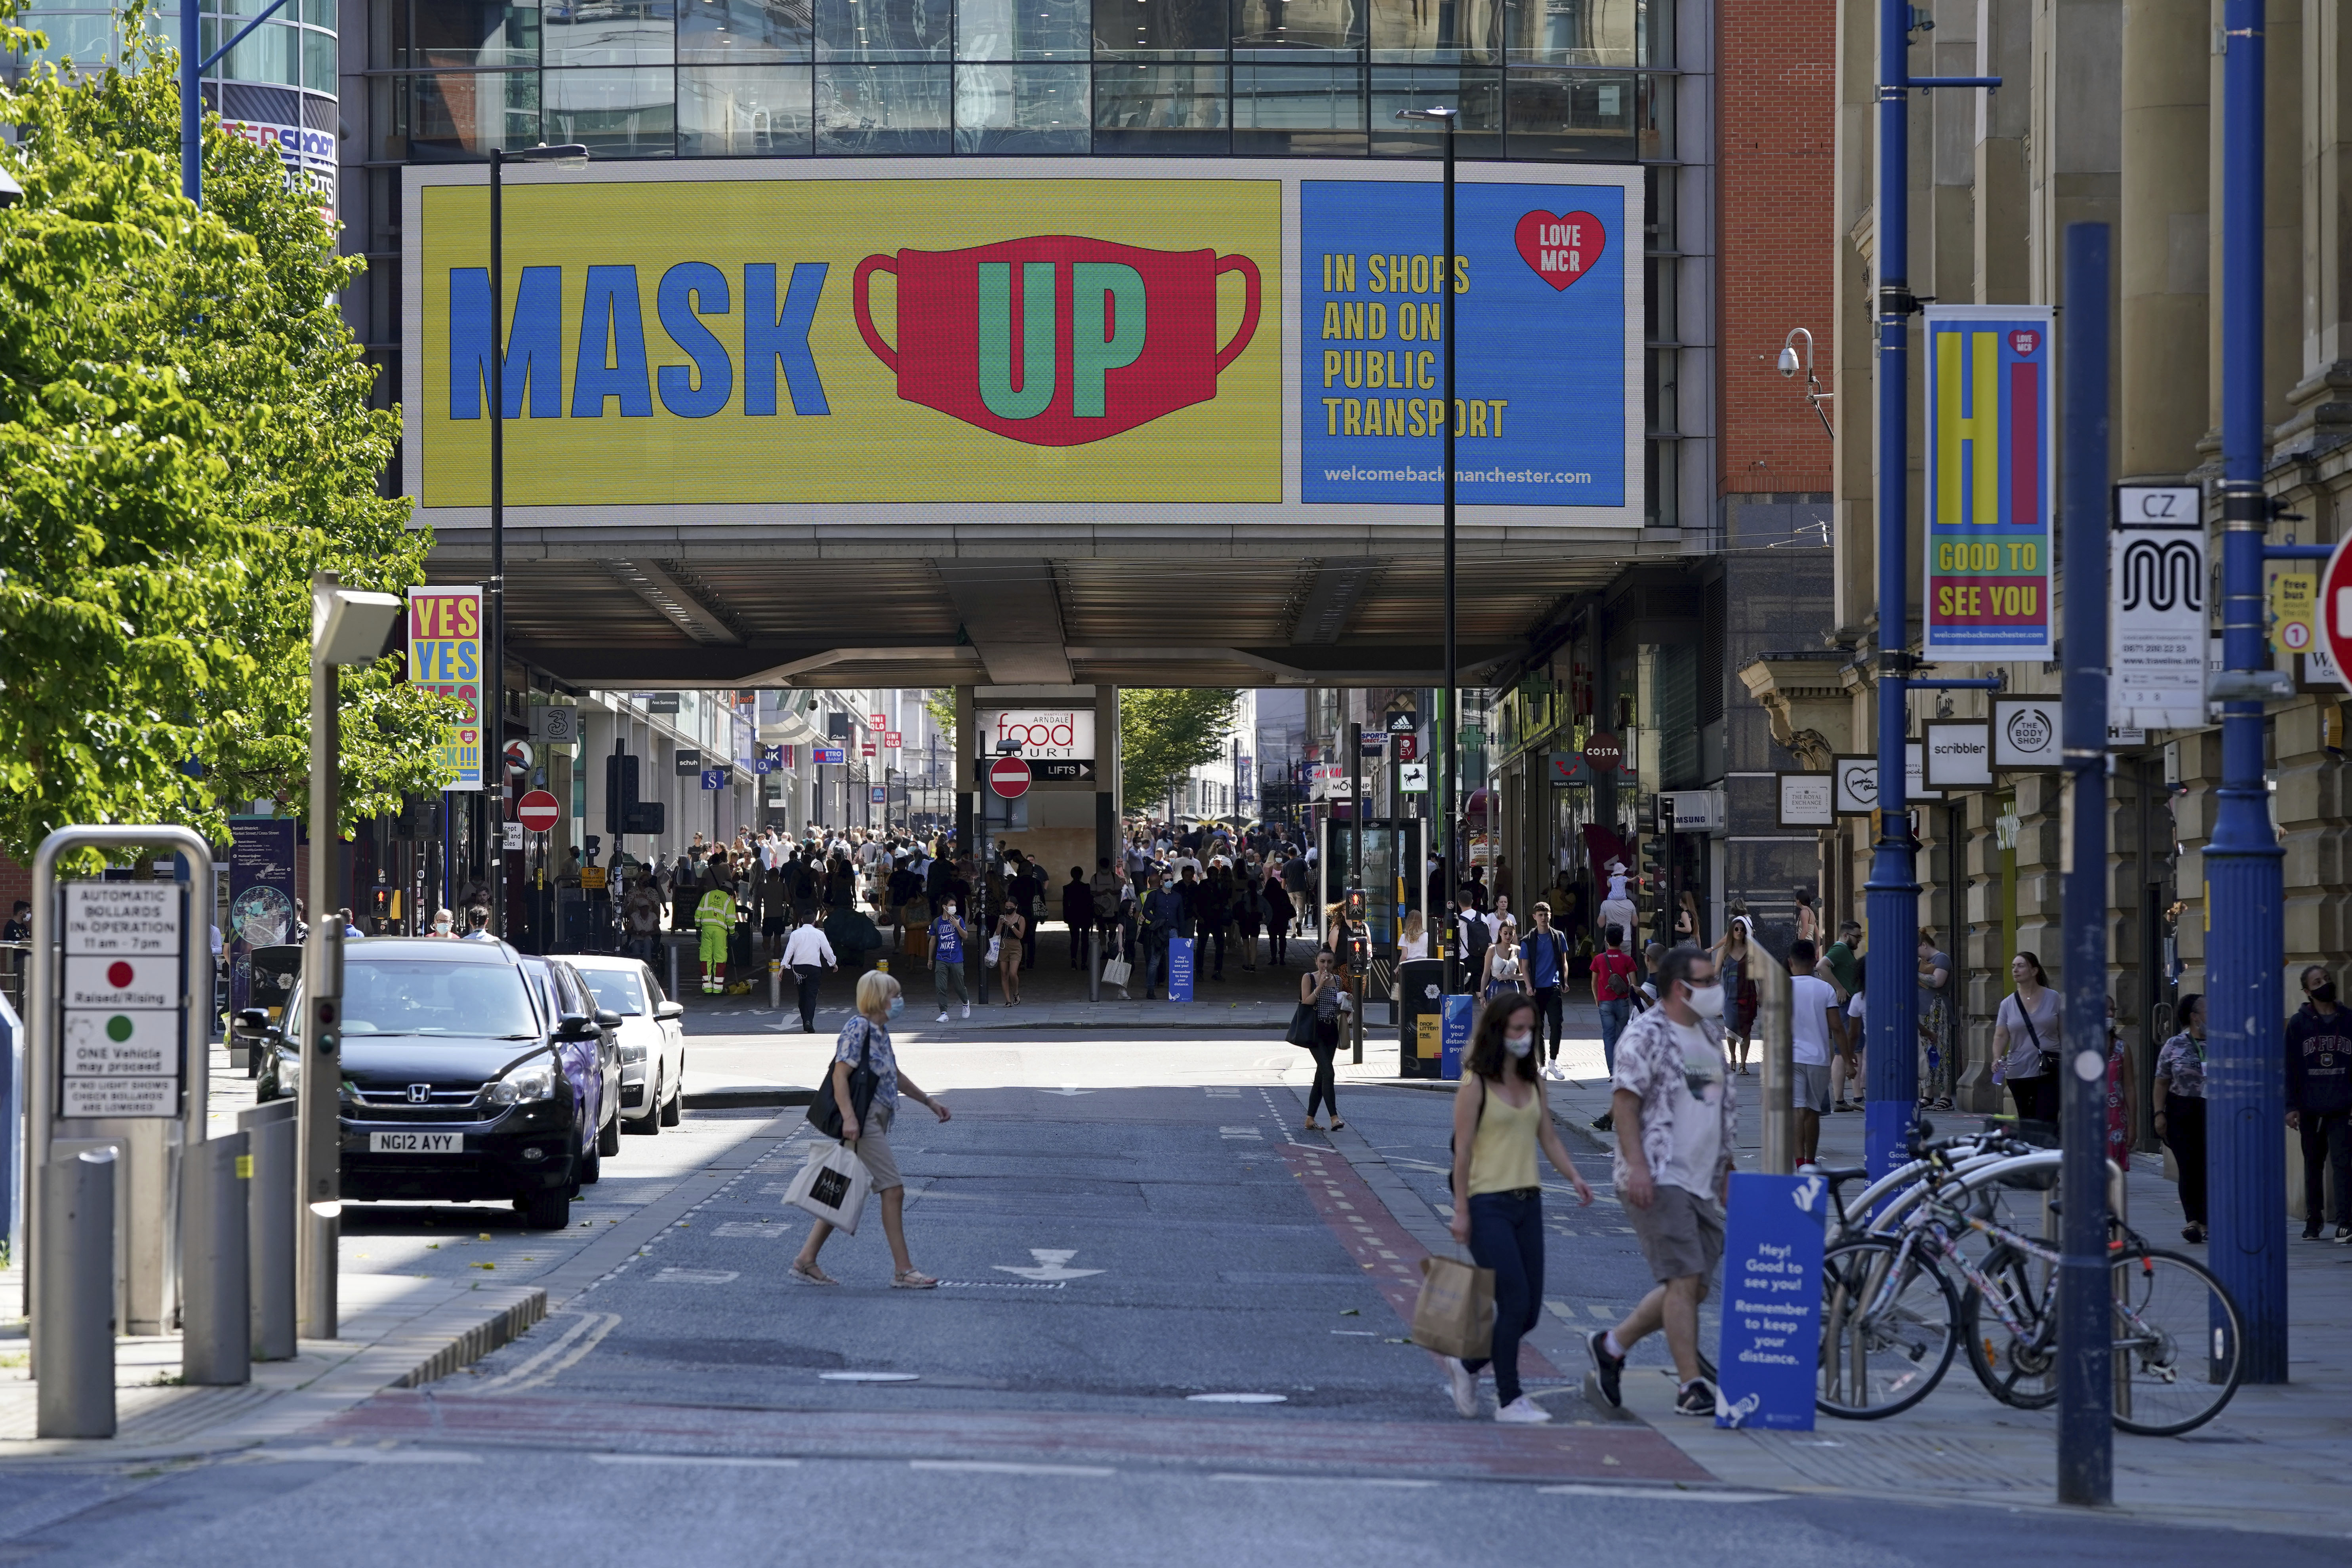 """People wearing face masks to try to stop the spread of coronavirus walk backdropped by a """"Mask Up"""" sign in Manchester, northern England, Friday, July 31, 2020. The British government on Thursday night announced new rules on gatherings in some parts of Northern England, including Manchester, that people there should not mix with other households in private homes or gardens in response to an increase trend in the number of cases of coronavirus cases per 100,000 people. (AP Photo/Jon Super)"""